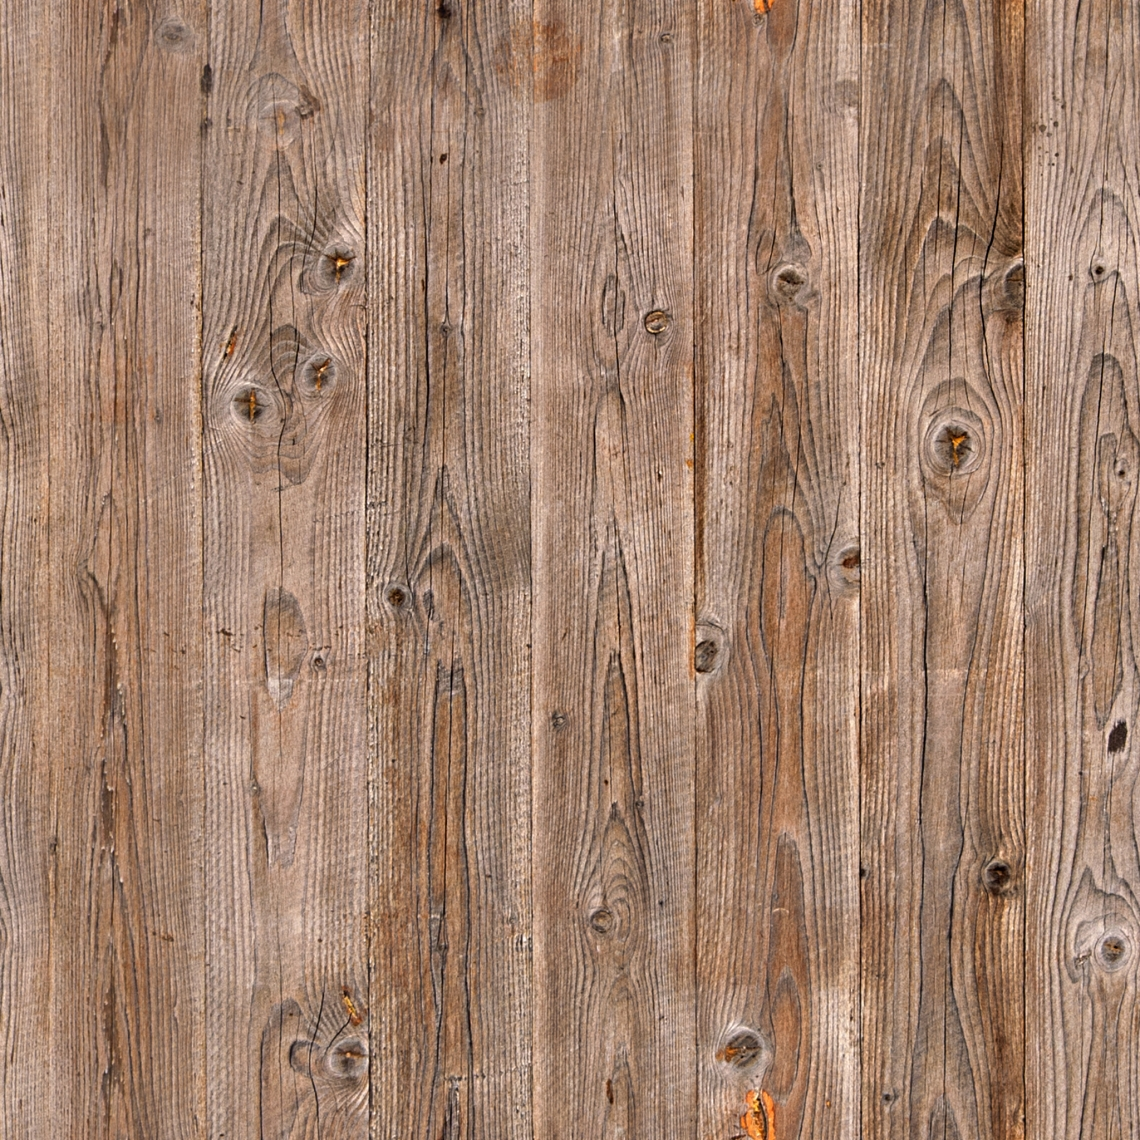 Wood Plank Texture Seamless ~ Seamless wood planks good textures